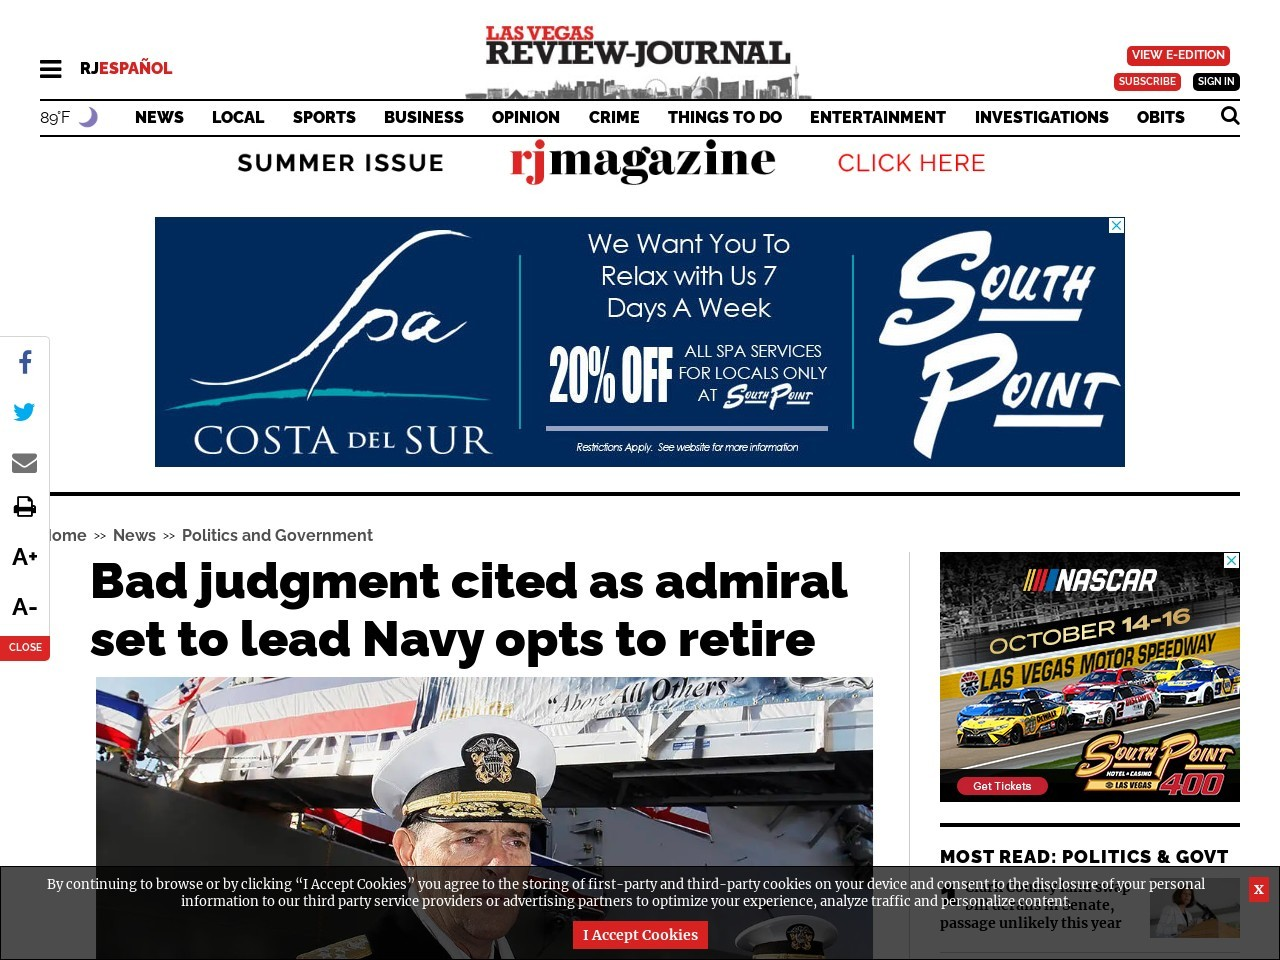 Bad judgment cited as admiral set to lead Navy opts to retire